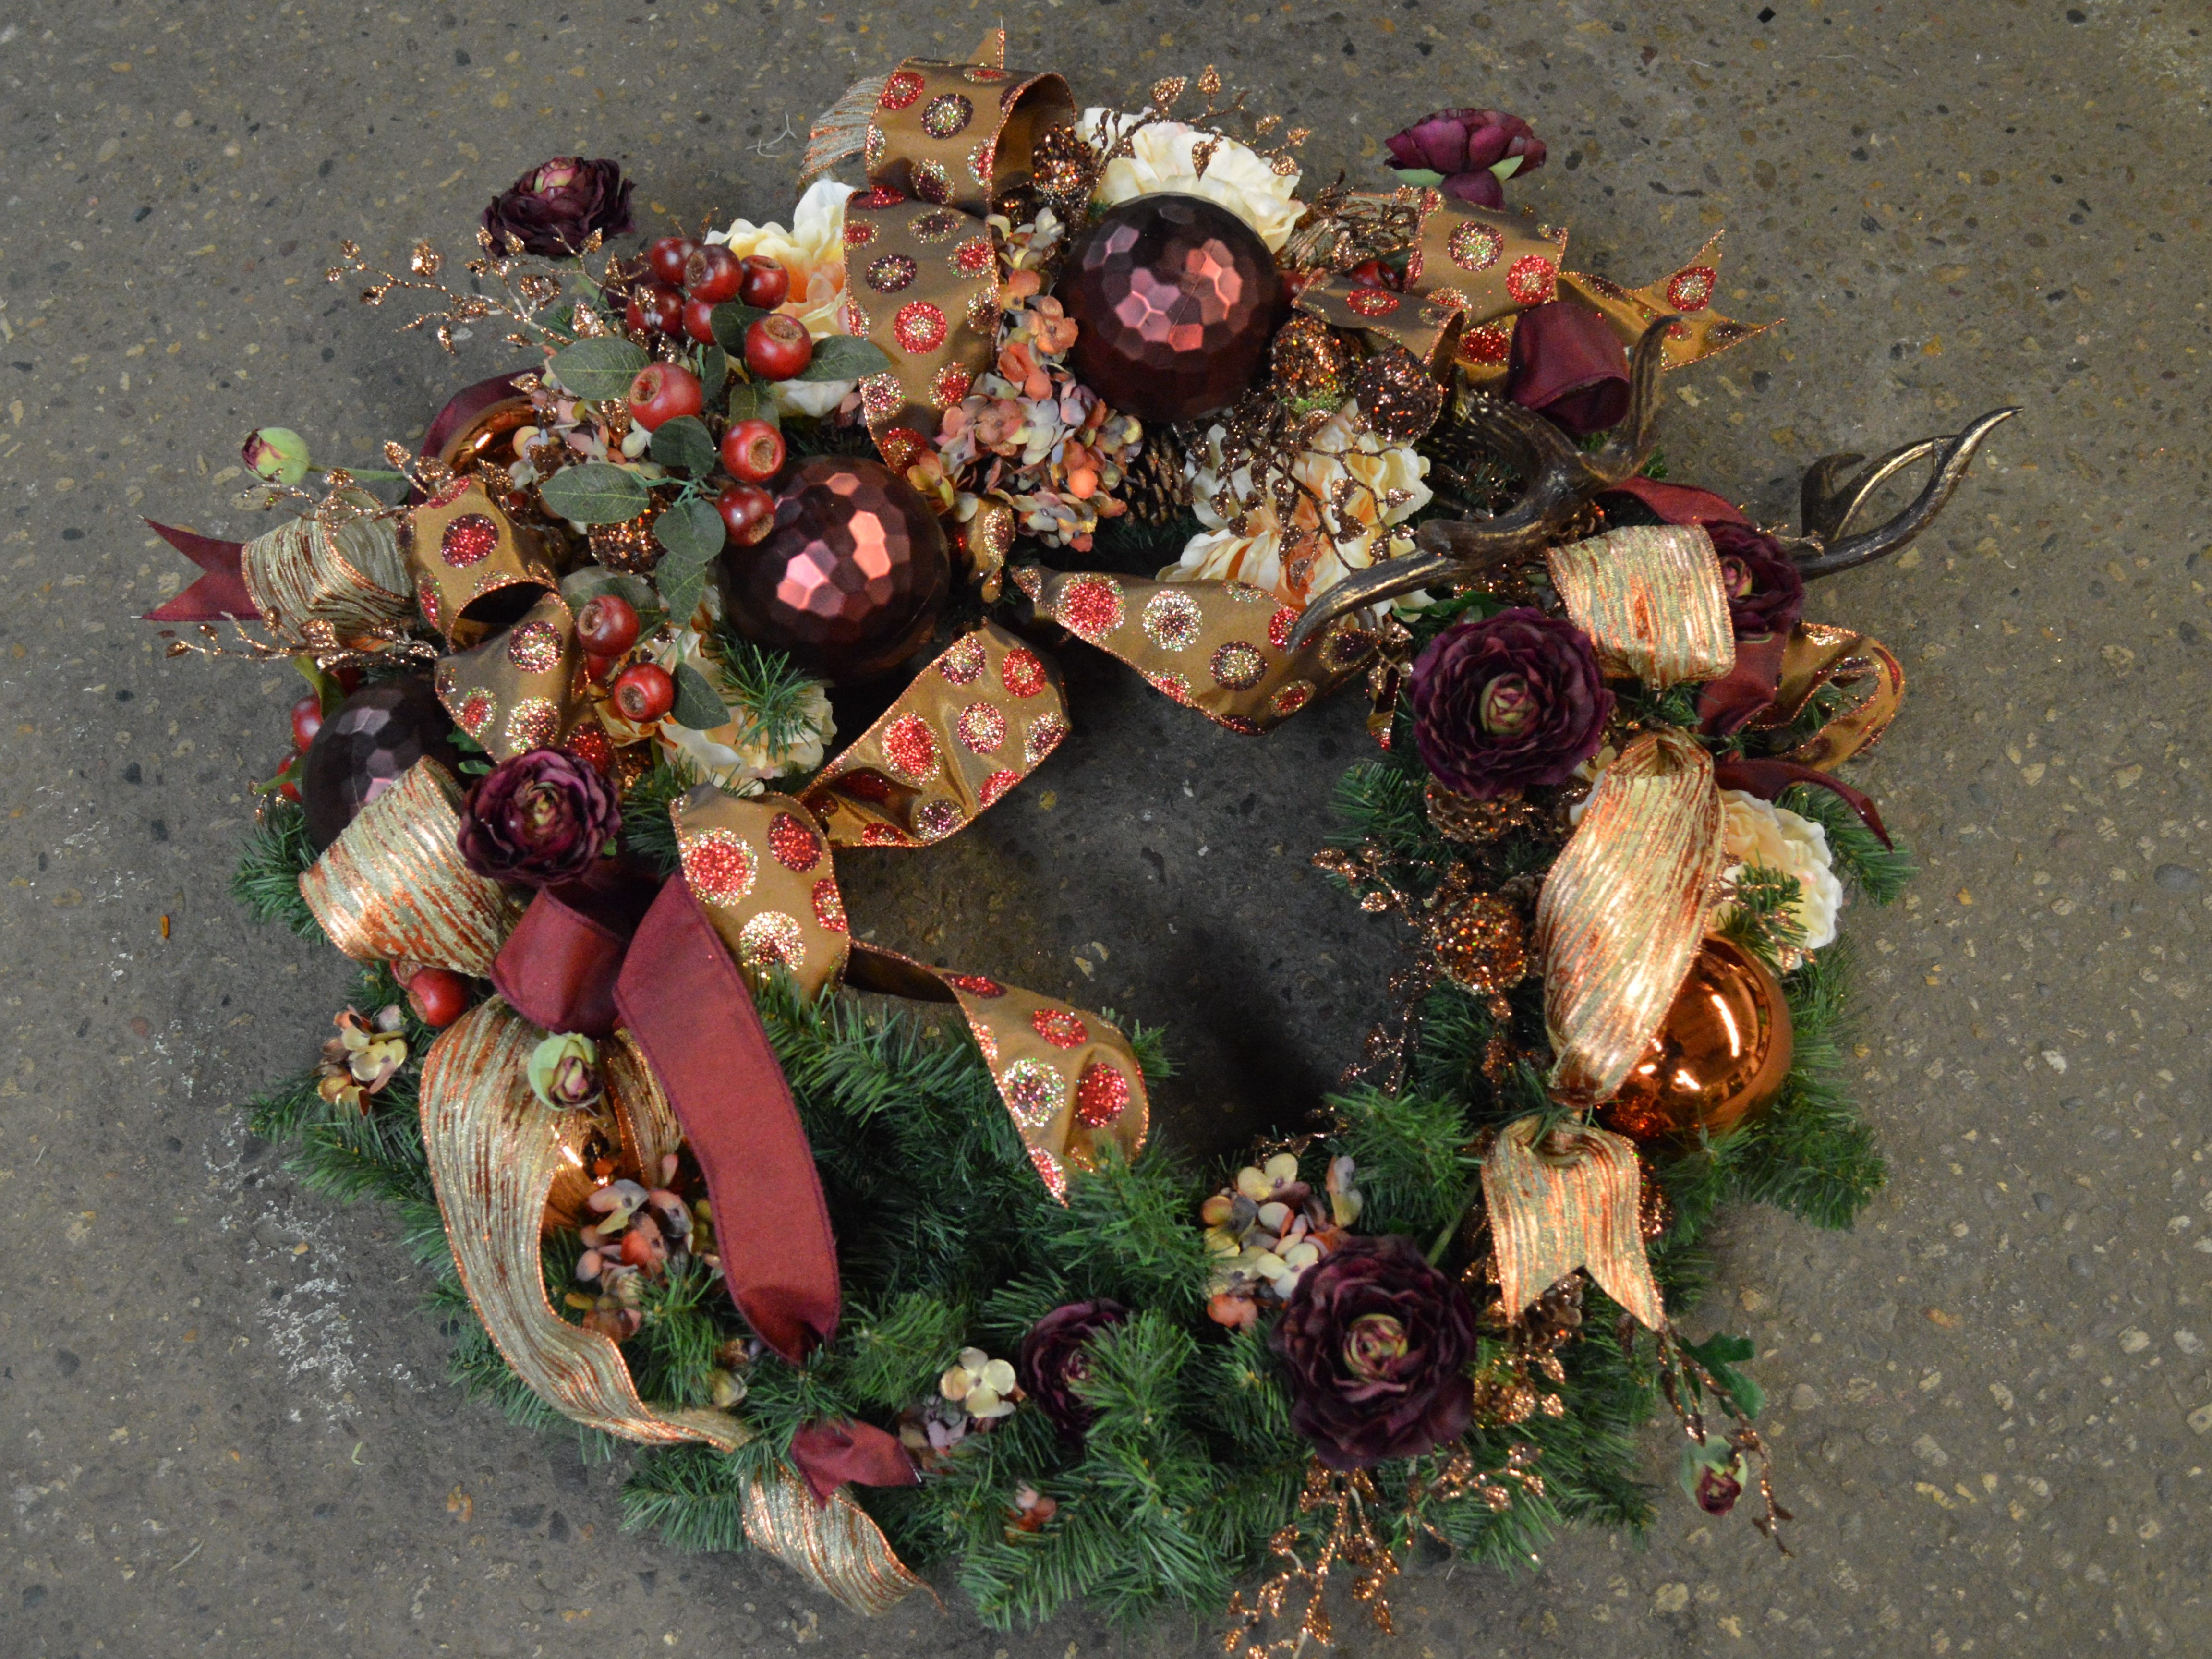 This transeasonal wreath took Grob a half hour to make. She said it would take a beginner about an hour to an hour and a half.